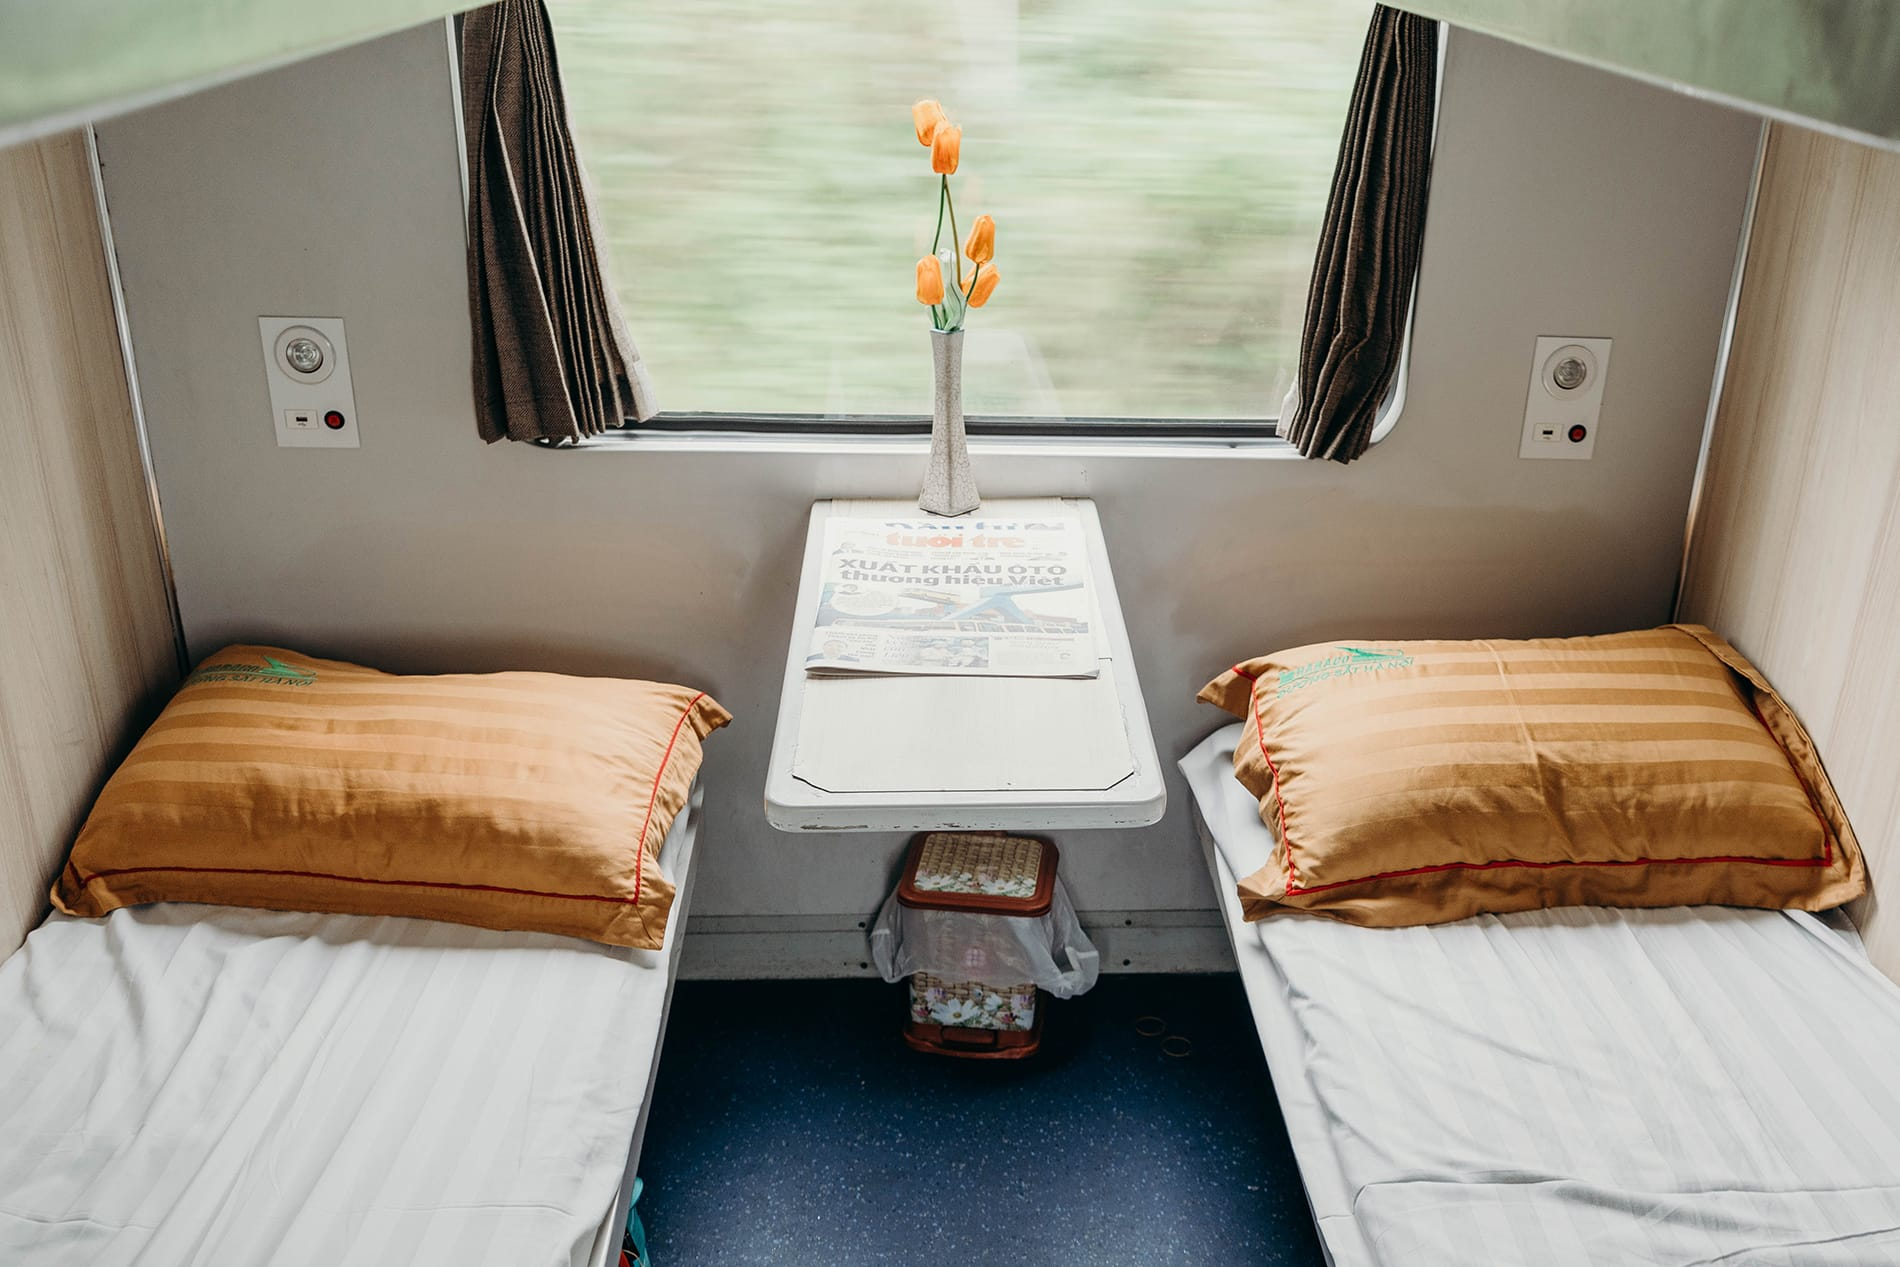 bunk beds at the soft-sleeper cars